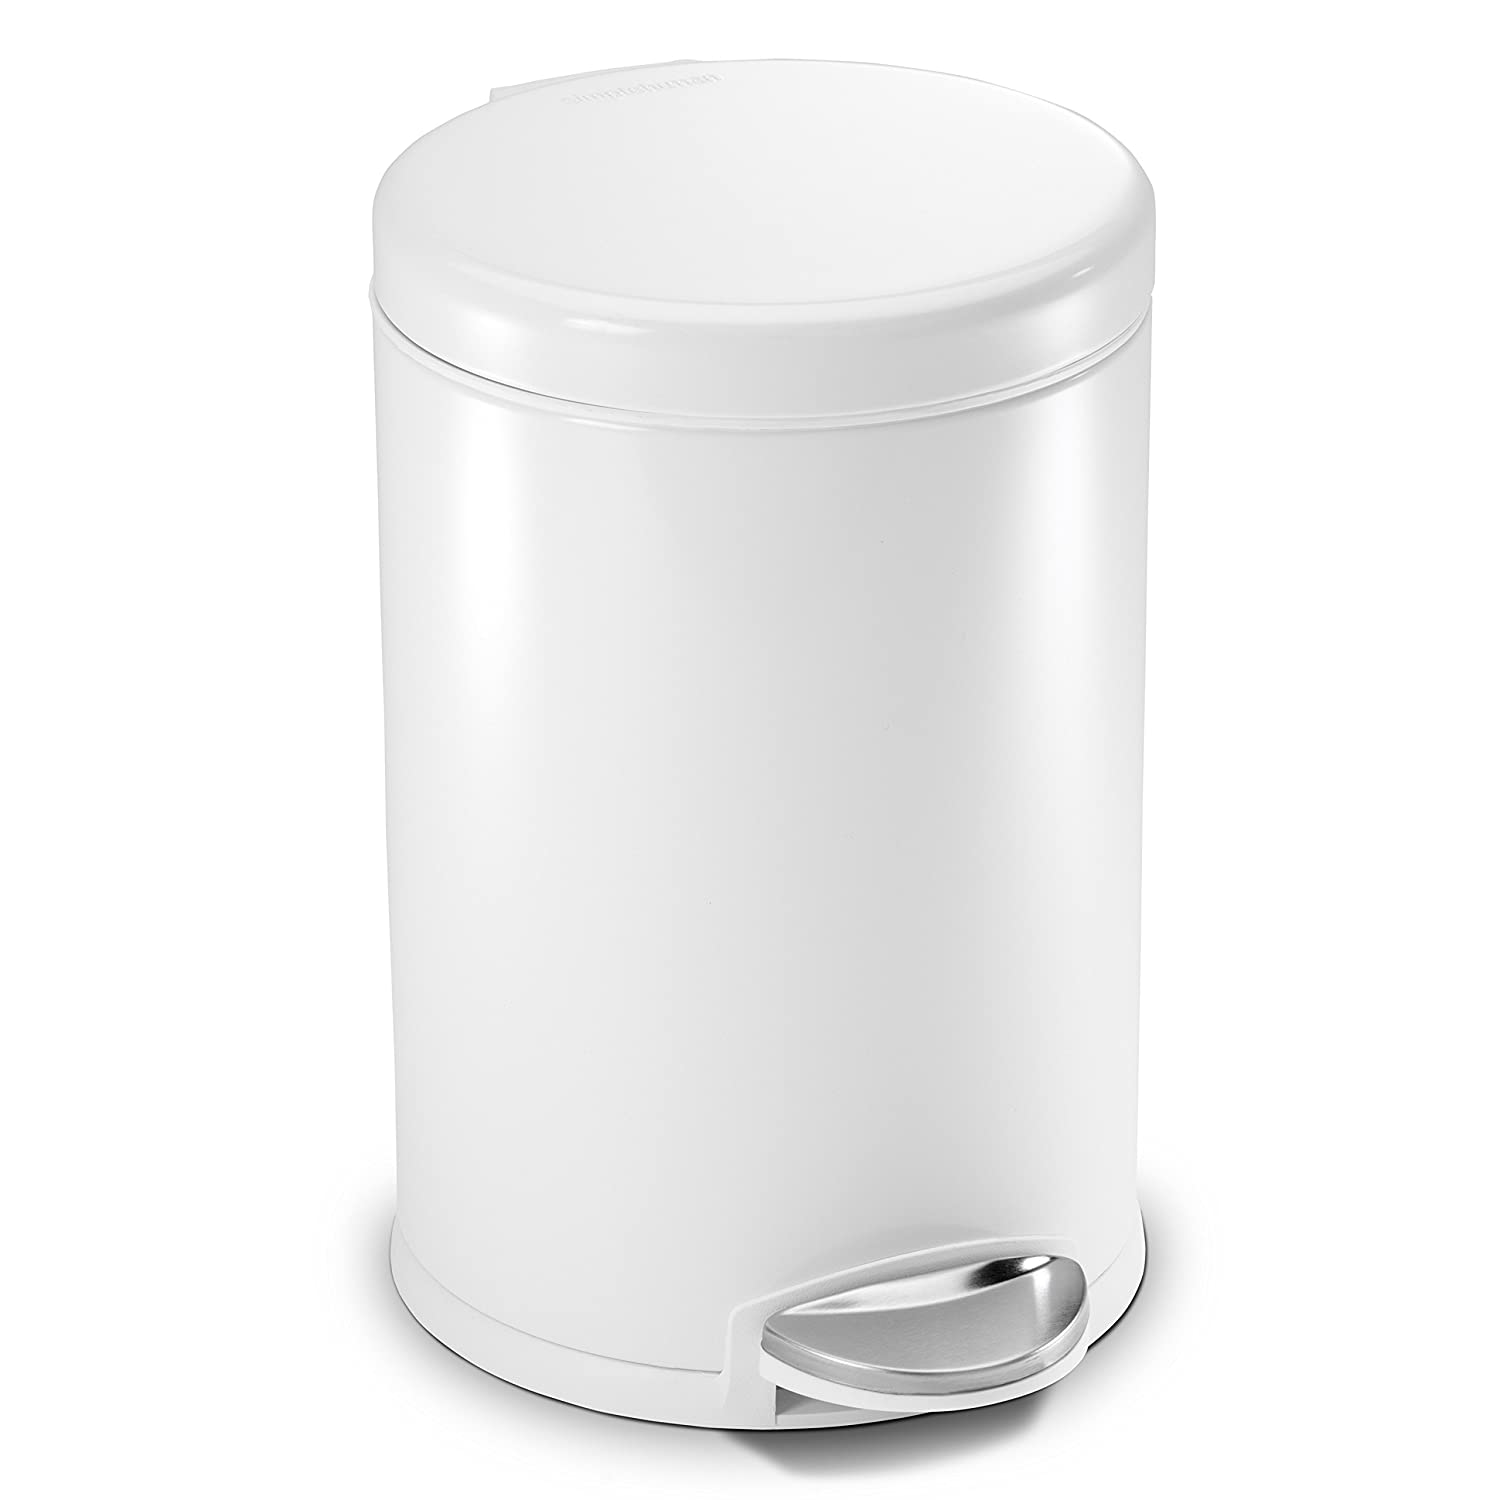 simplehuman 4.5-Liter /1.2-Gallon Round Step Trash Can, White Steel